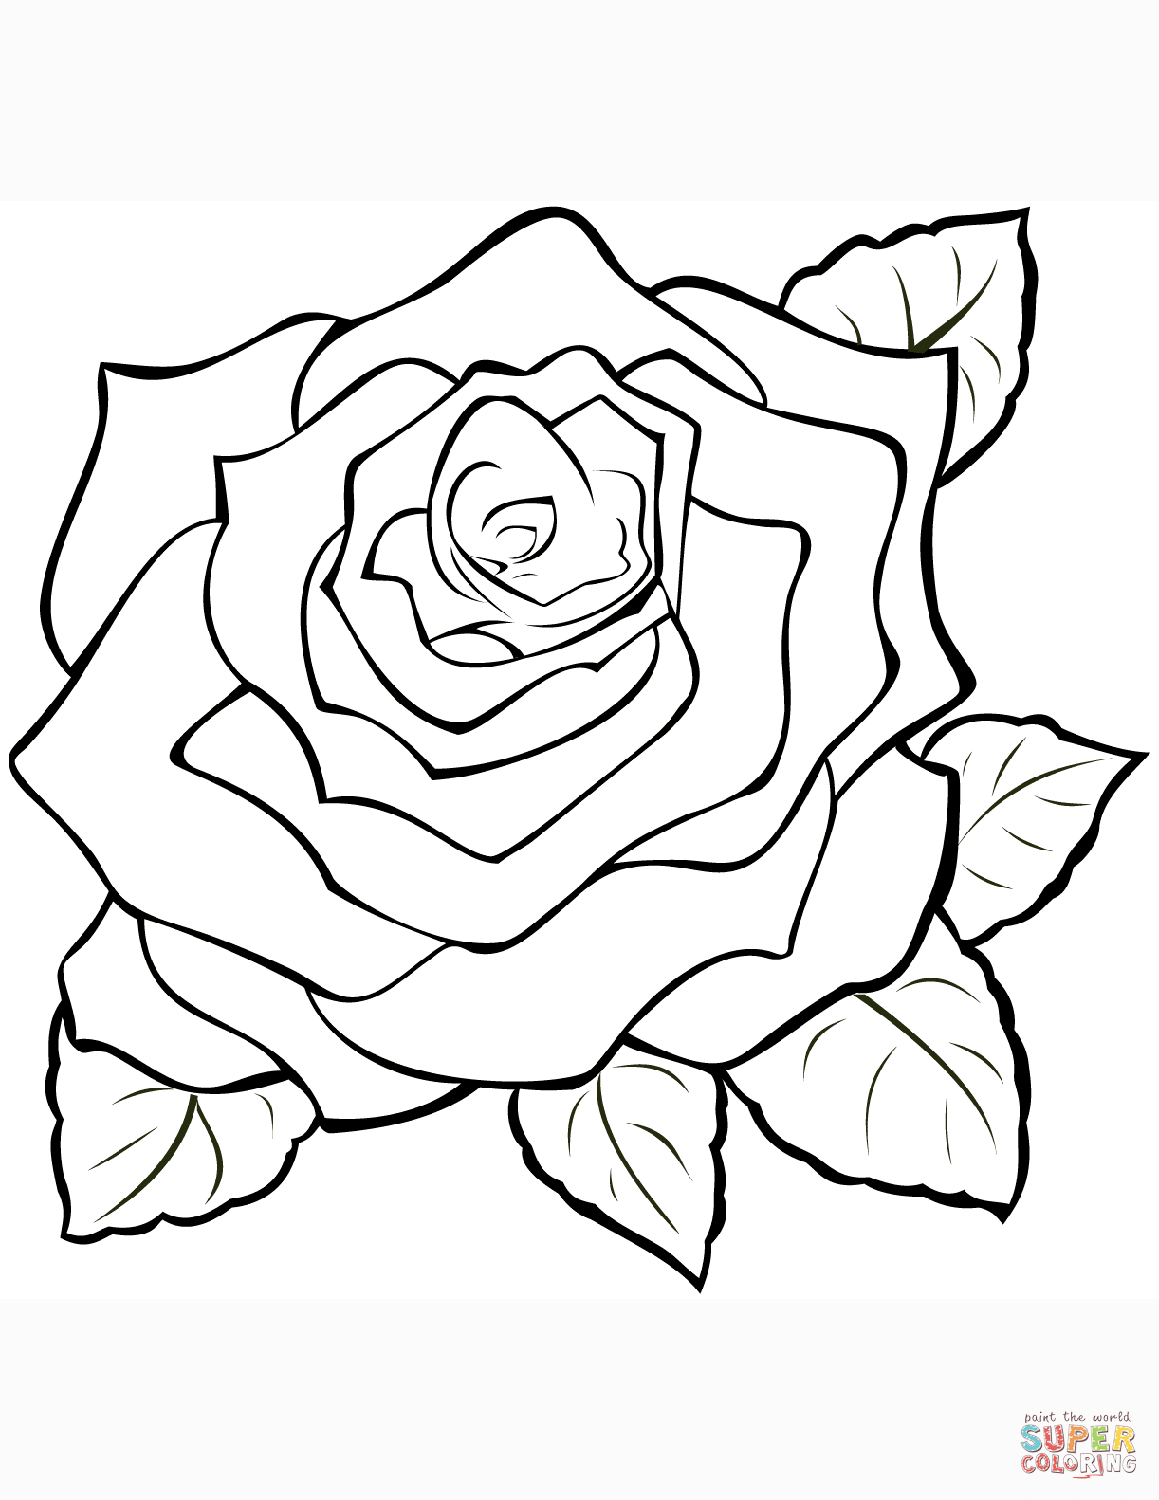 rose to color printable rose coloring pages for kids cool2bkids to color rose